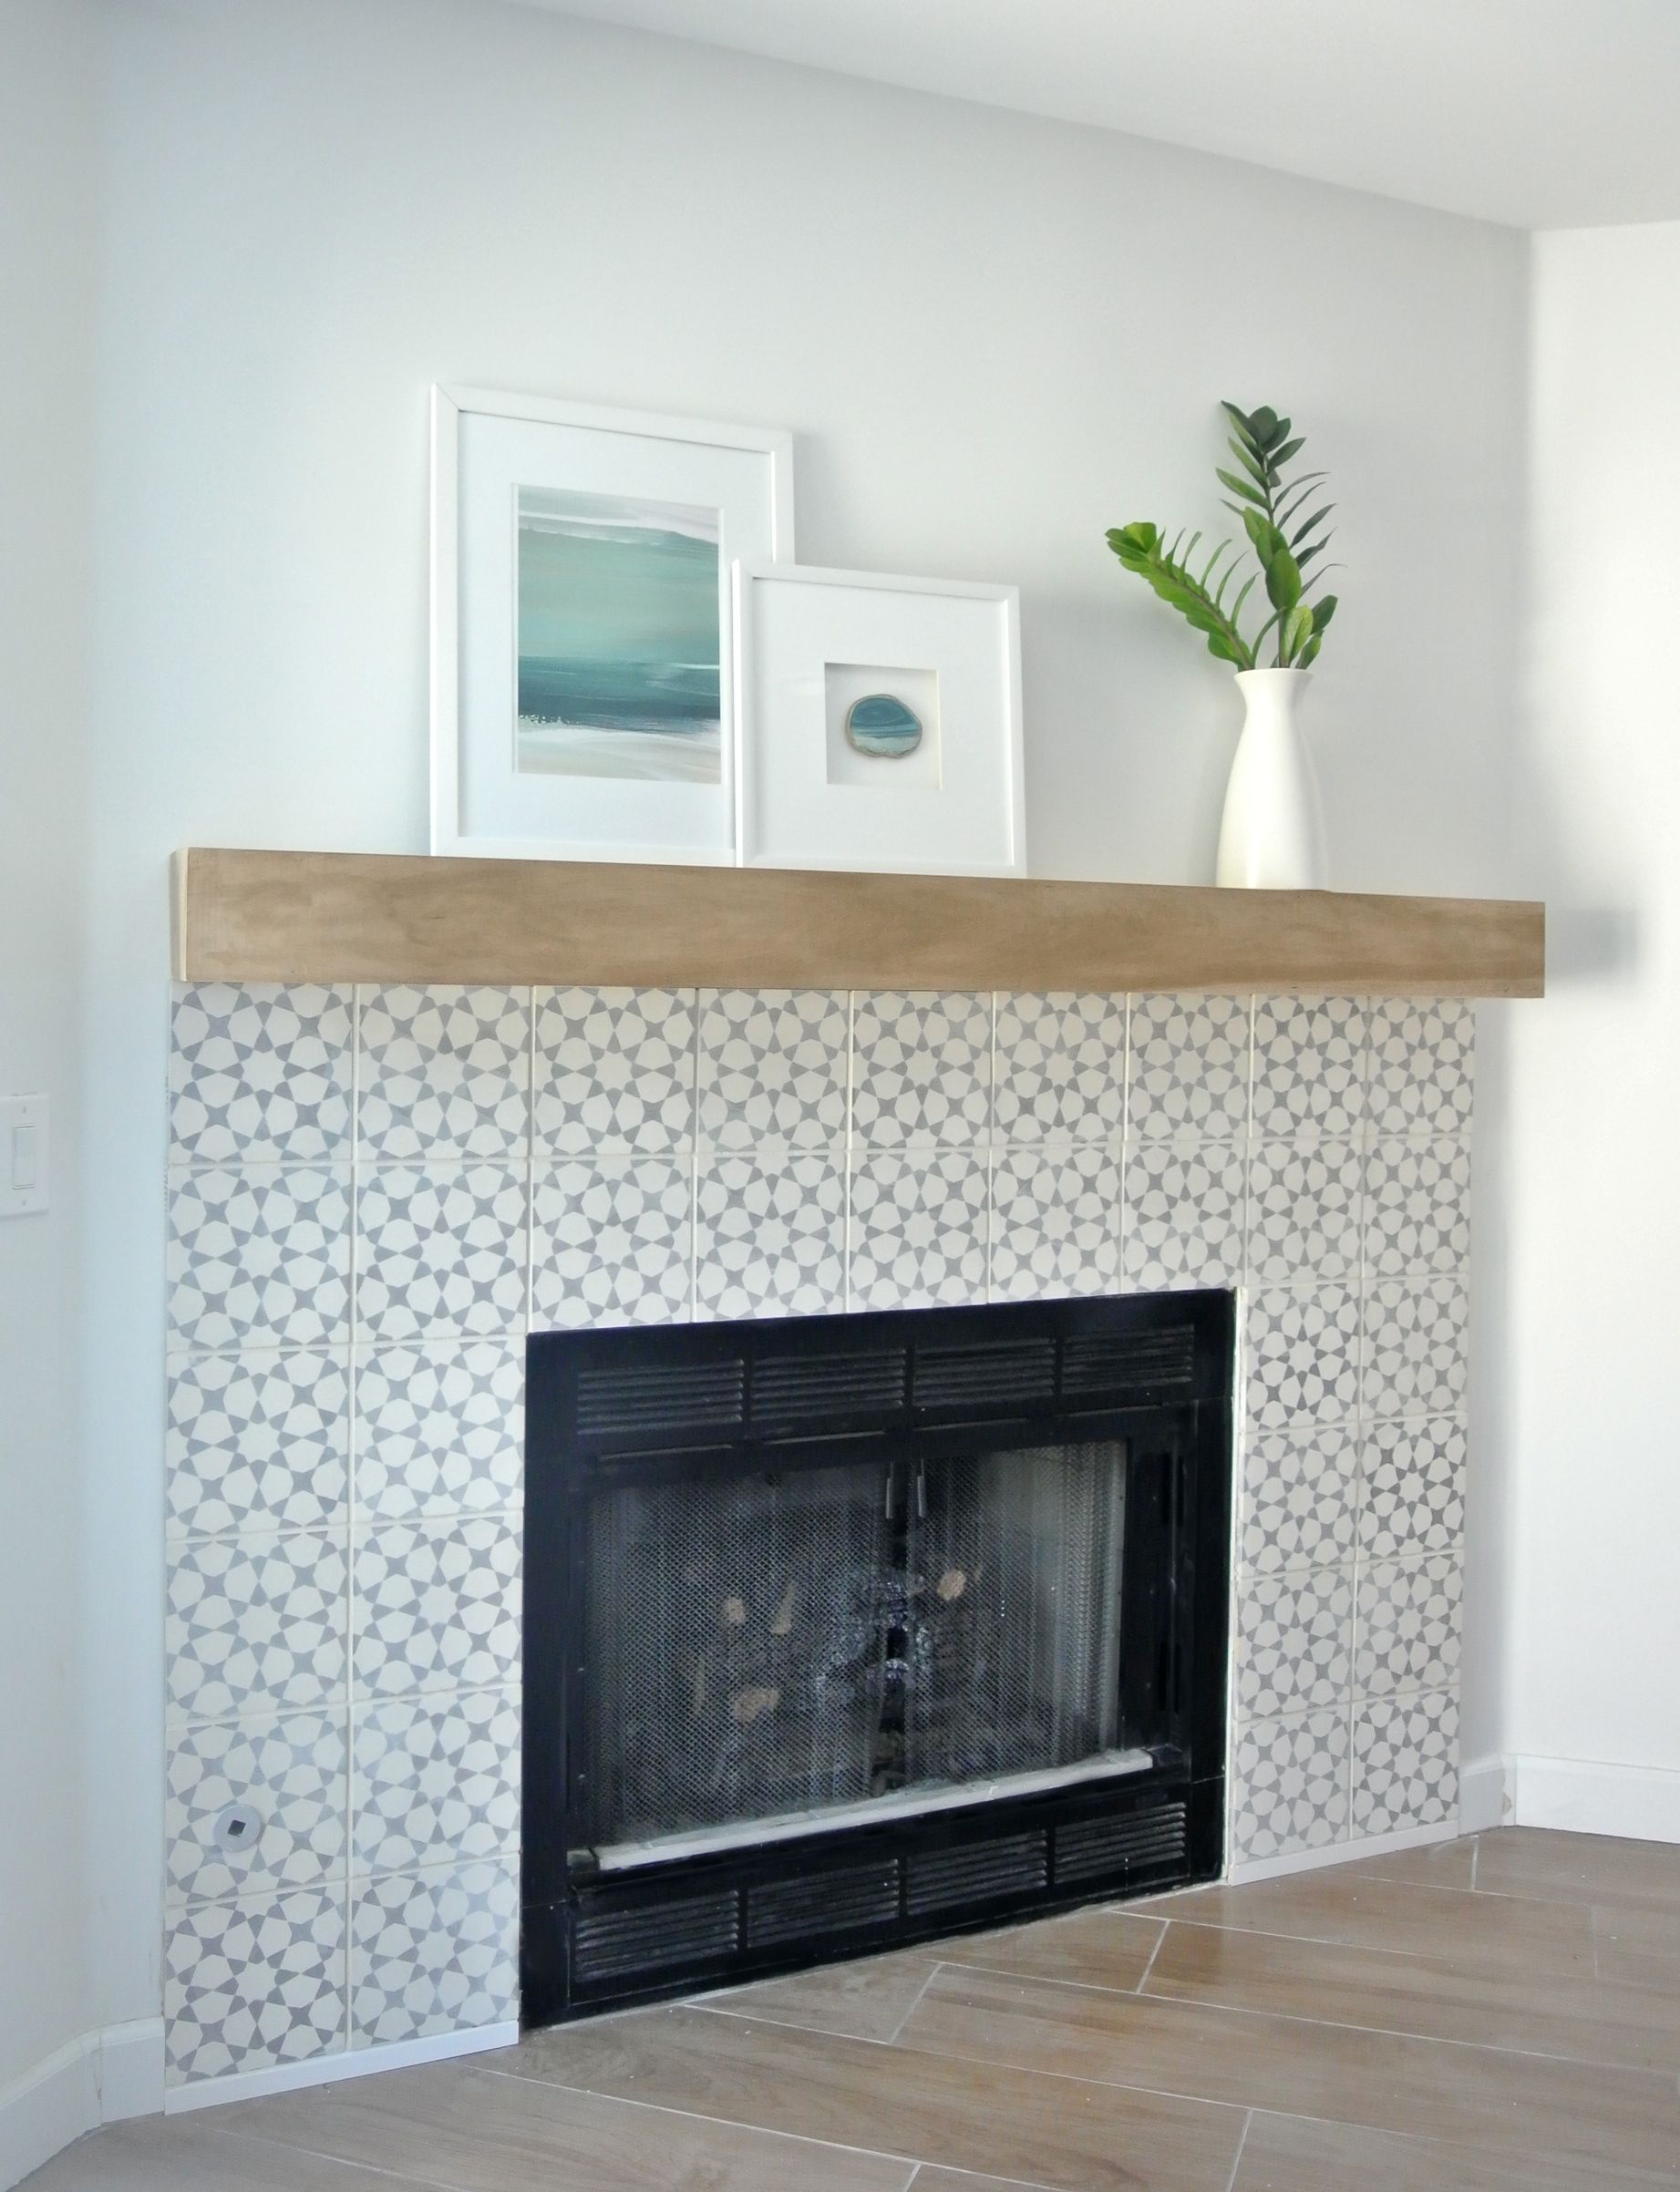 Diy Fireplace Makeover Centsational Style Diy Fireplace Makeover Diy Fireplace Home Fireplace